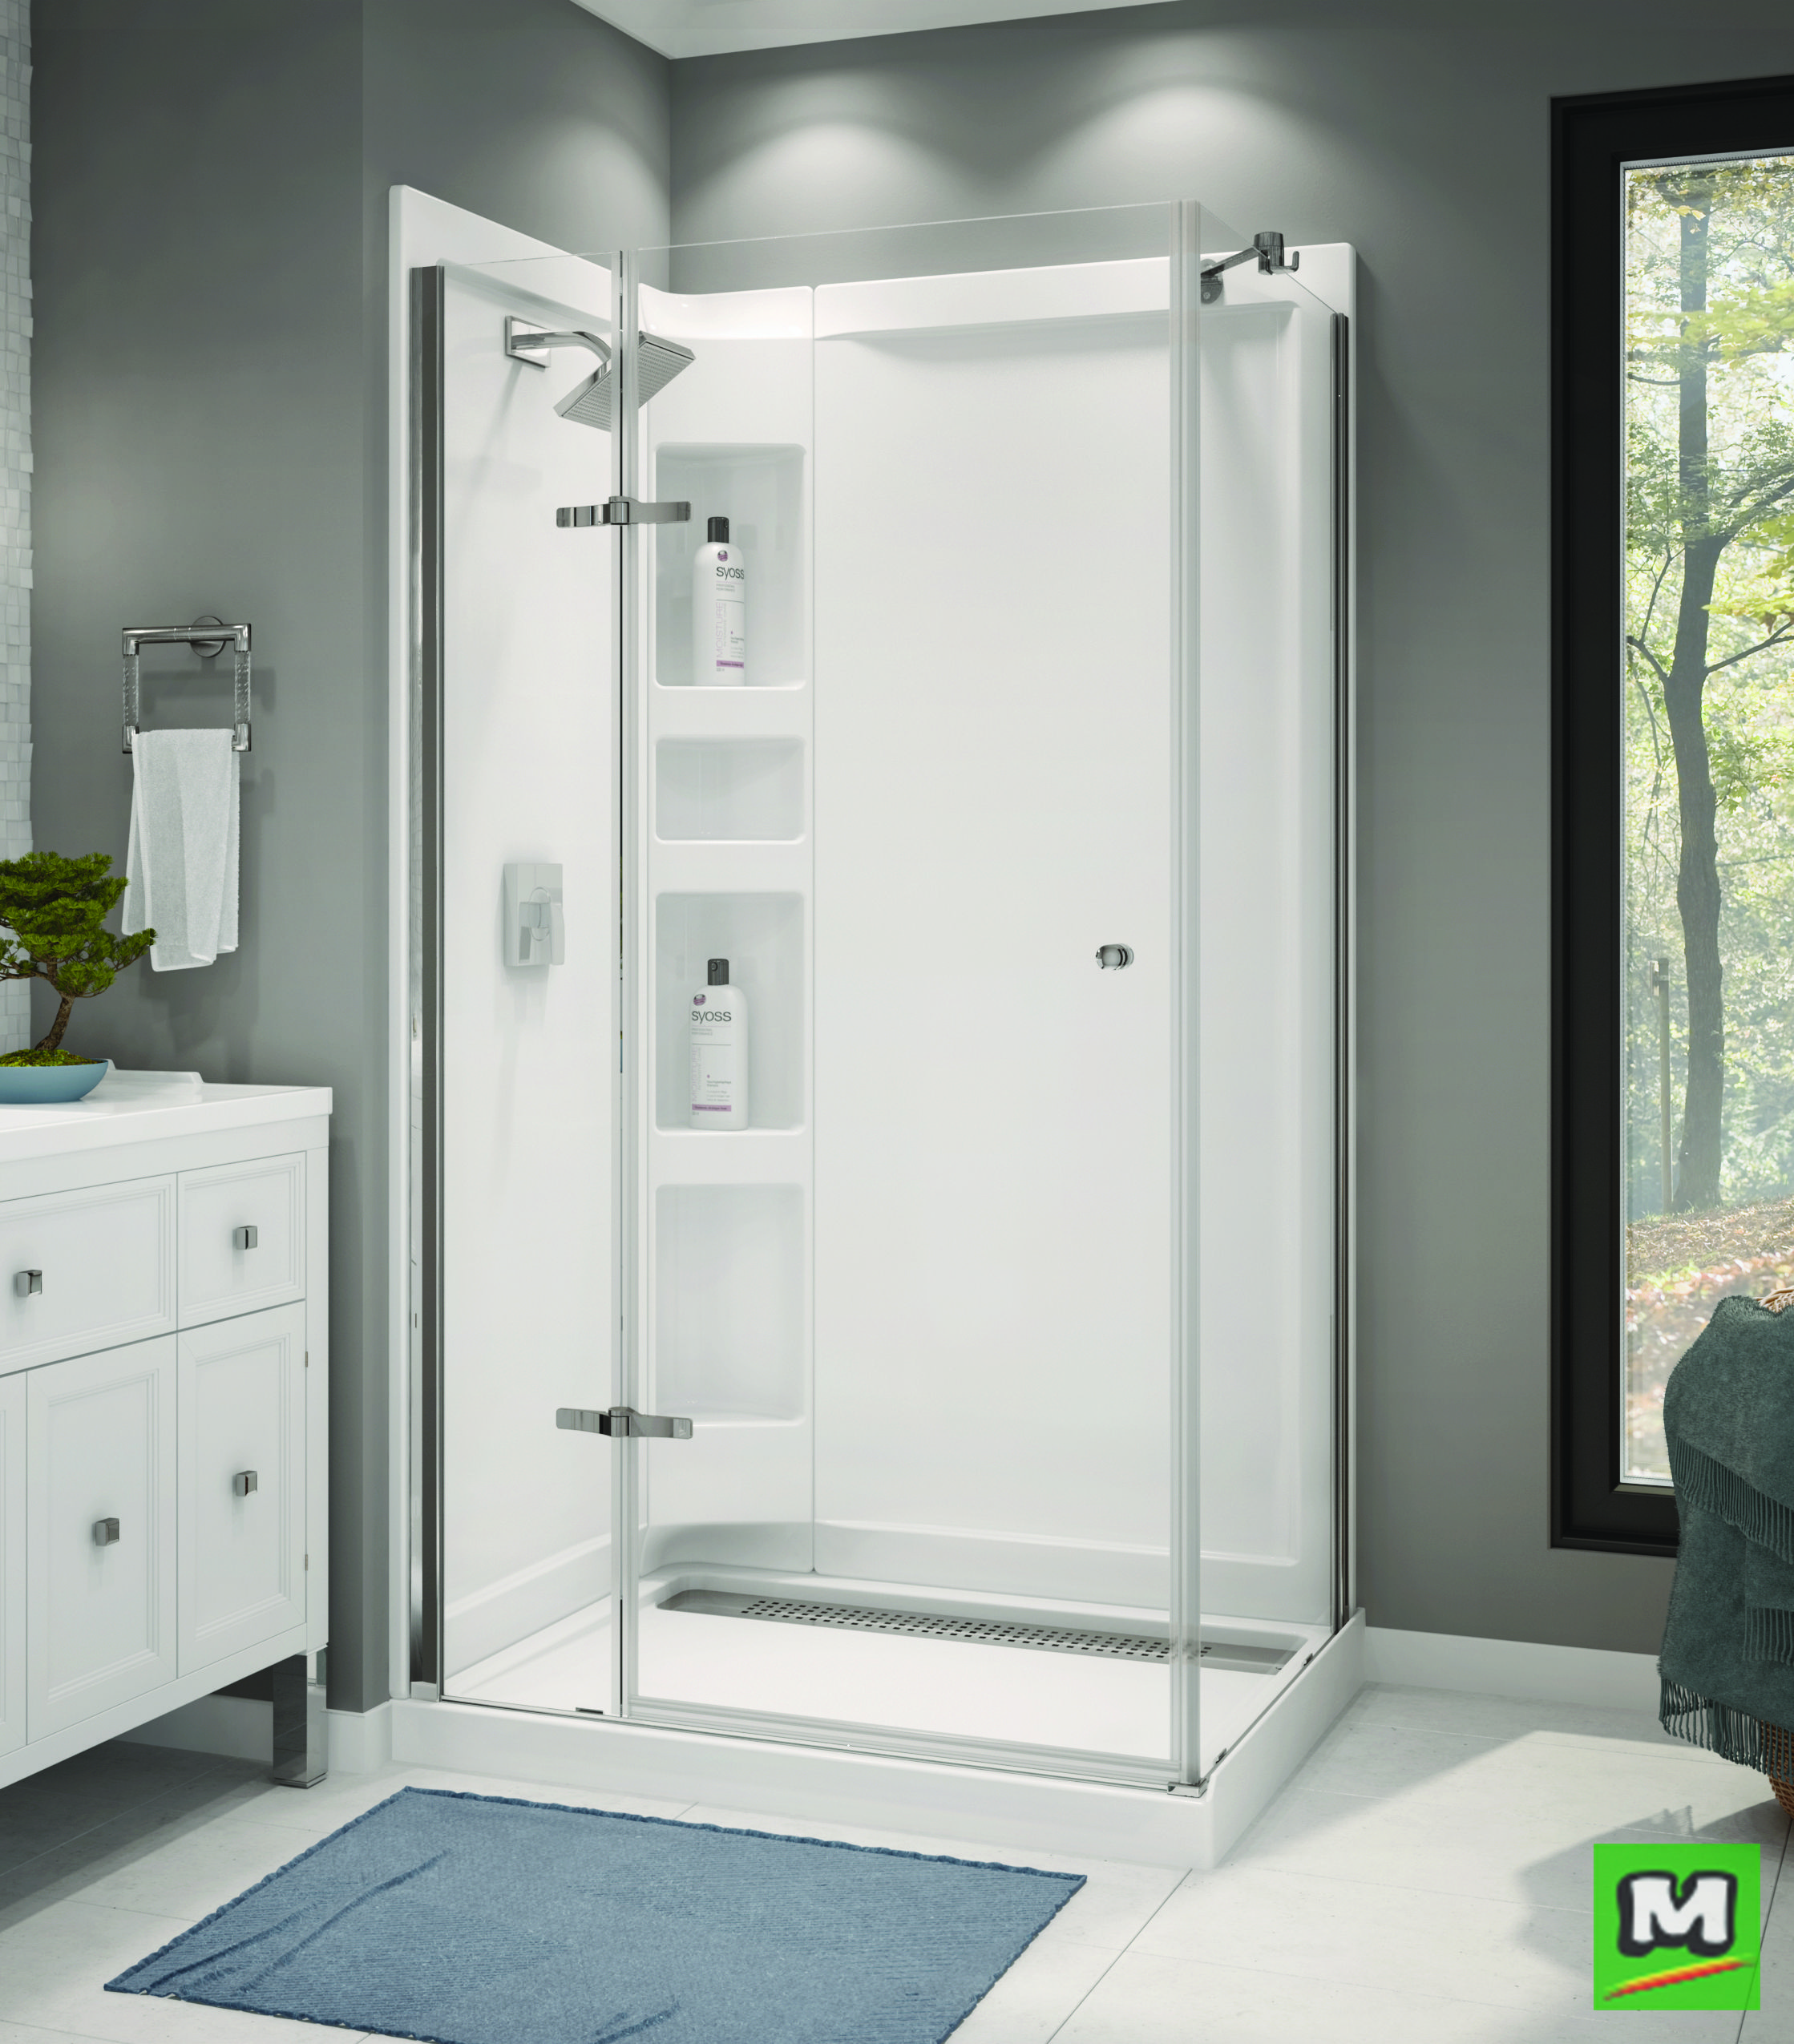 Create An Elegant Bathing Space With A Maax Athena 42 X 34 Corner Door Shower Kit This Sleek Shower Con Corner Shower Kits Shower Stall Shower Renovation